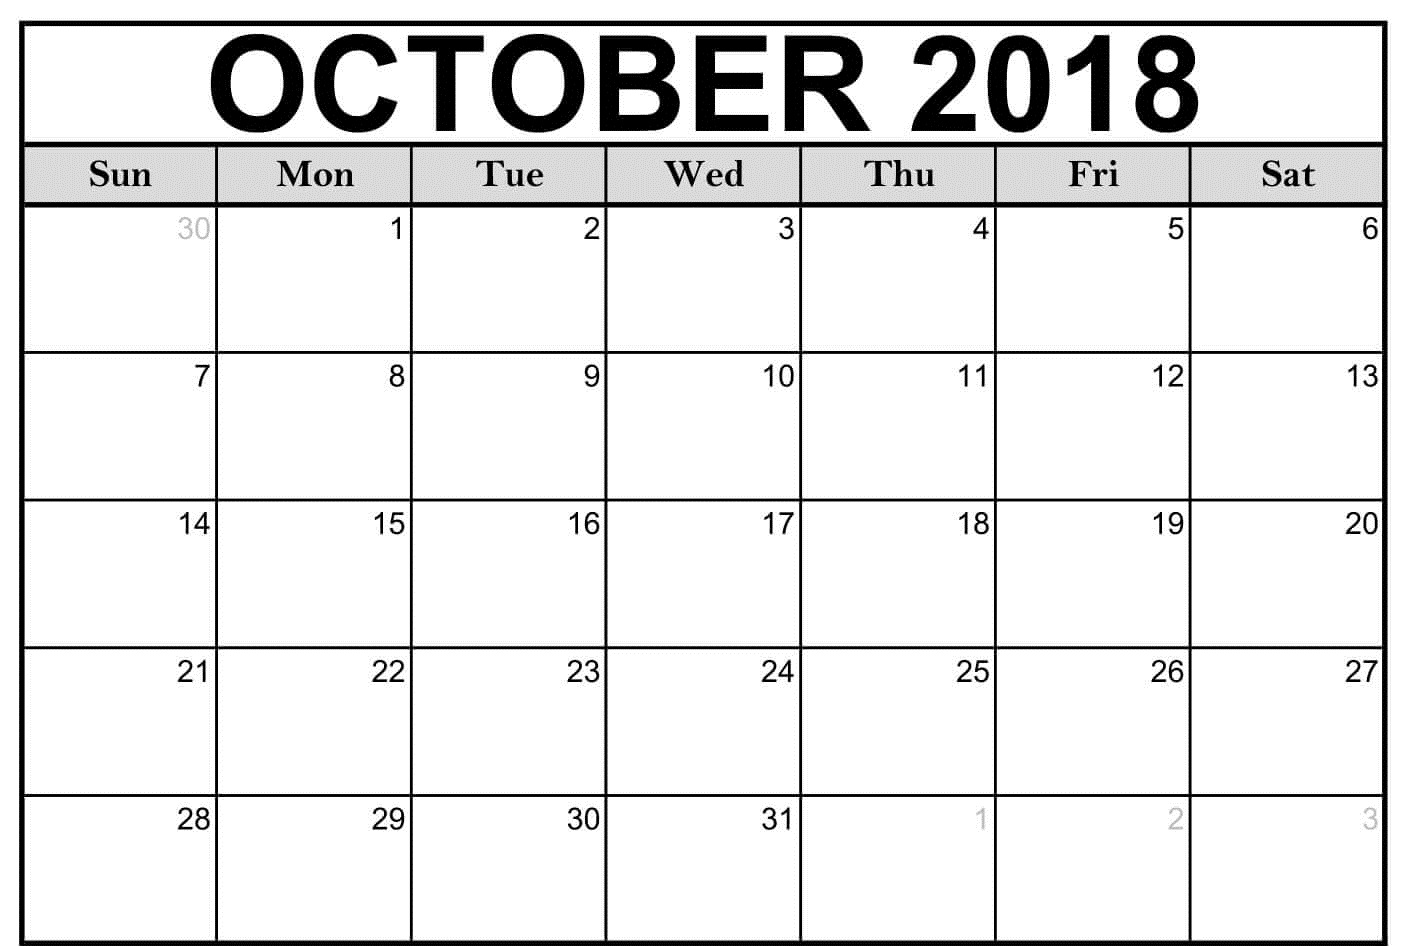 Monthly October Calendar For 2018